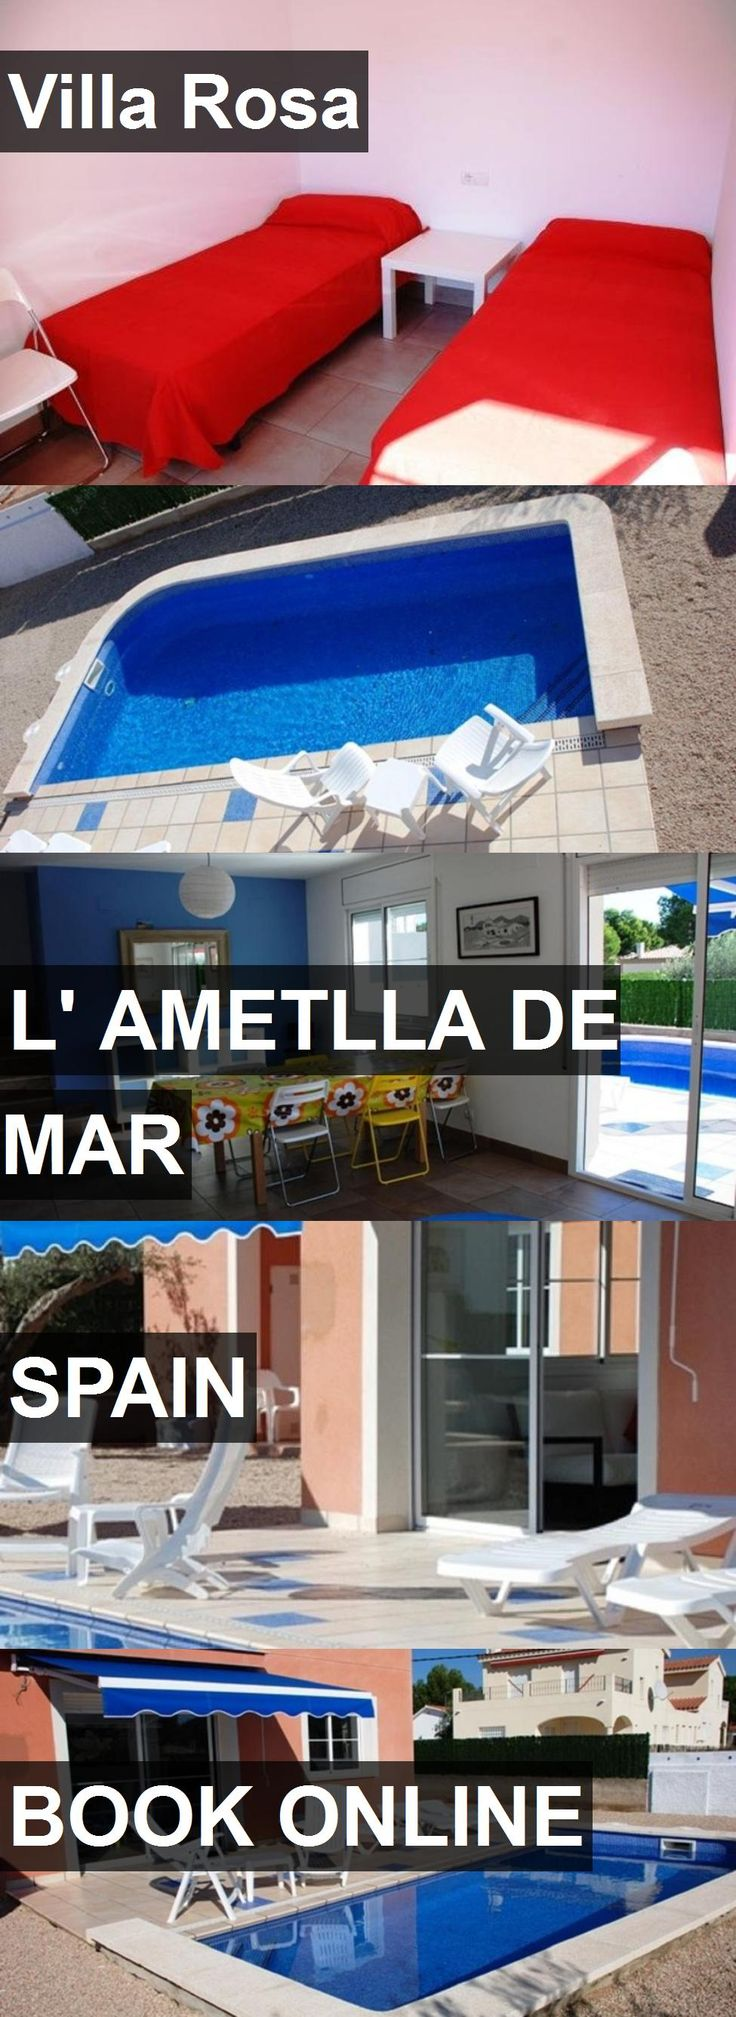 Hotel Villa Rosa in l' Ametlla de Mar, Spain. For more information, photos, reviews and best prices please follow the link. #Spain #l'AmetlladeMar #travel #vacation #hotel